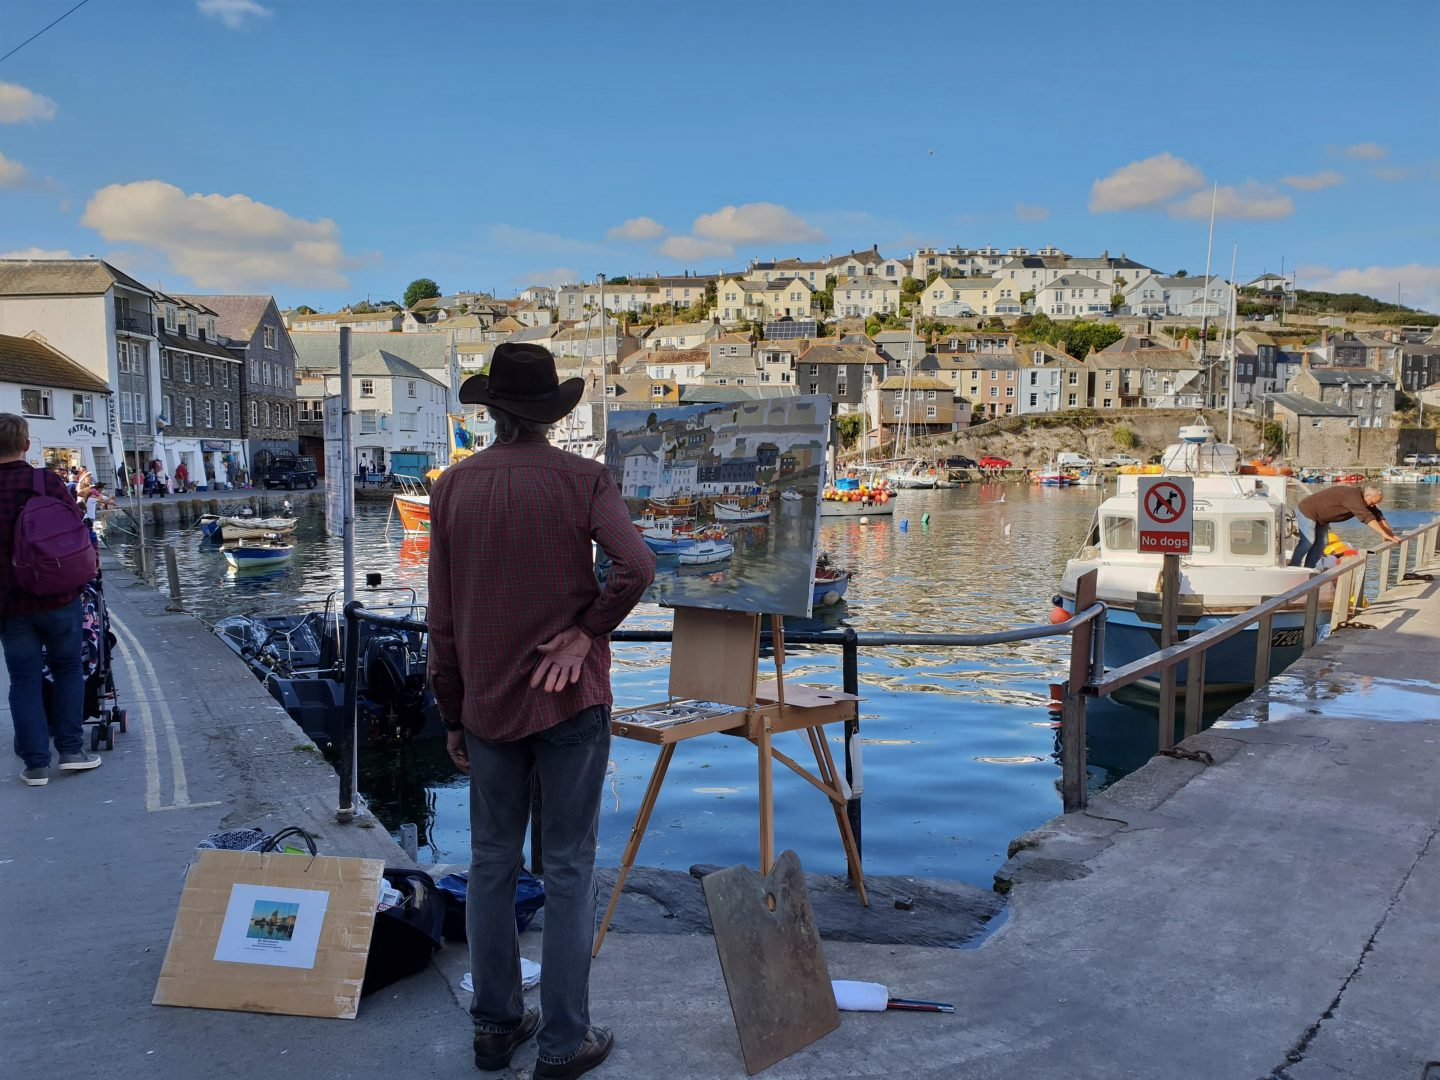 Artist painting at Mevagissey harbour